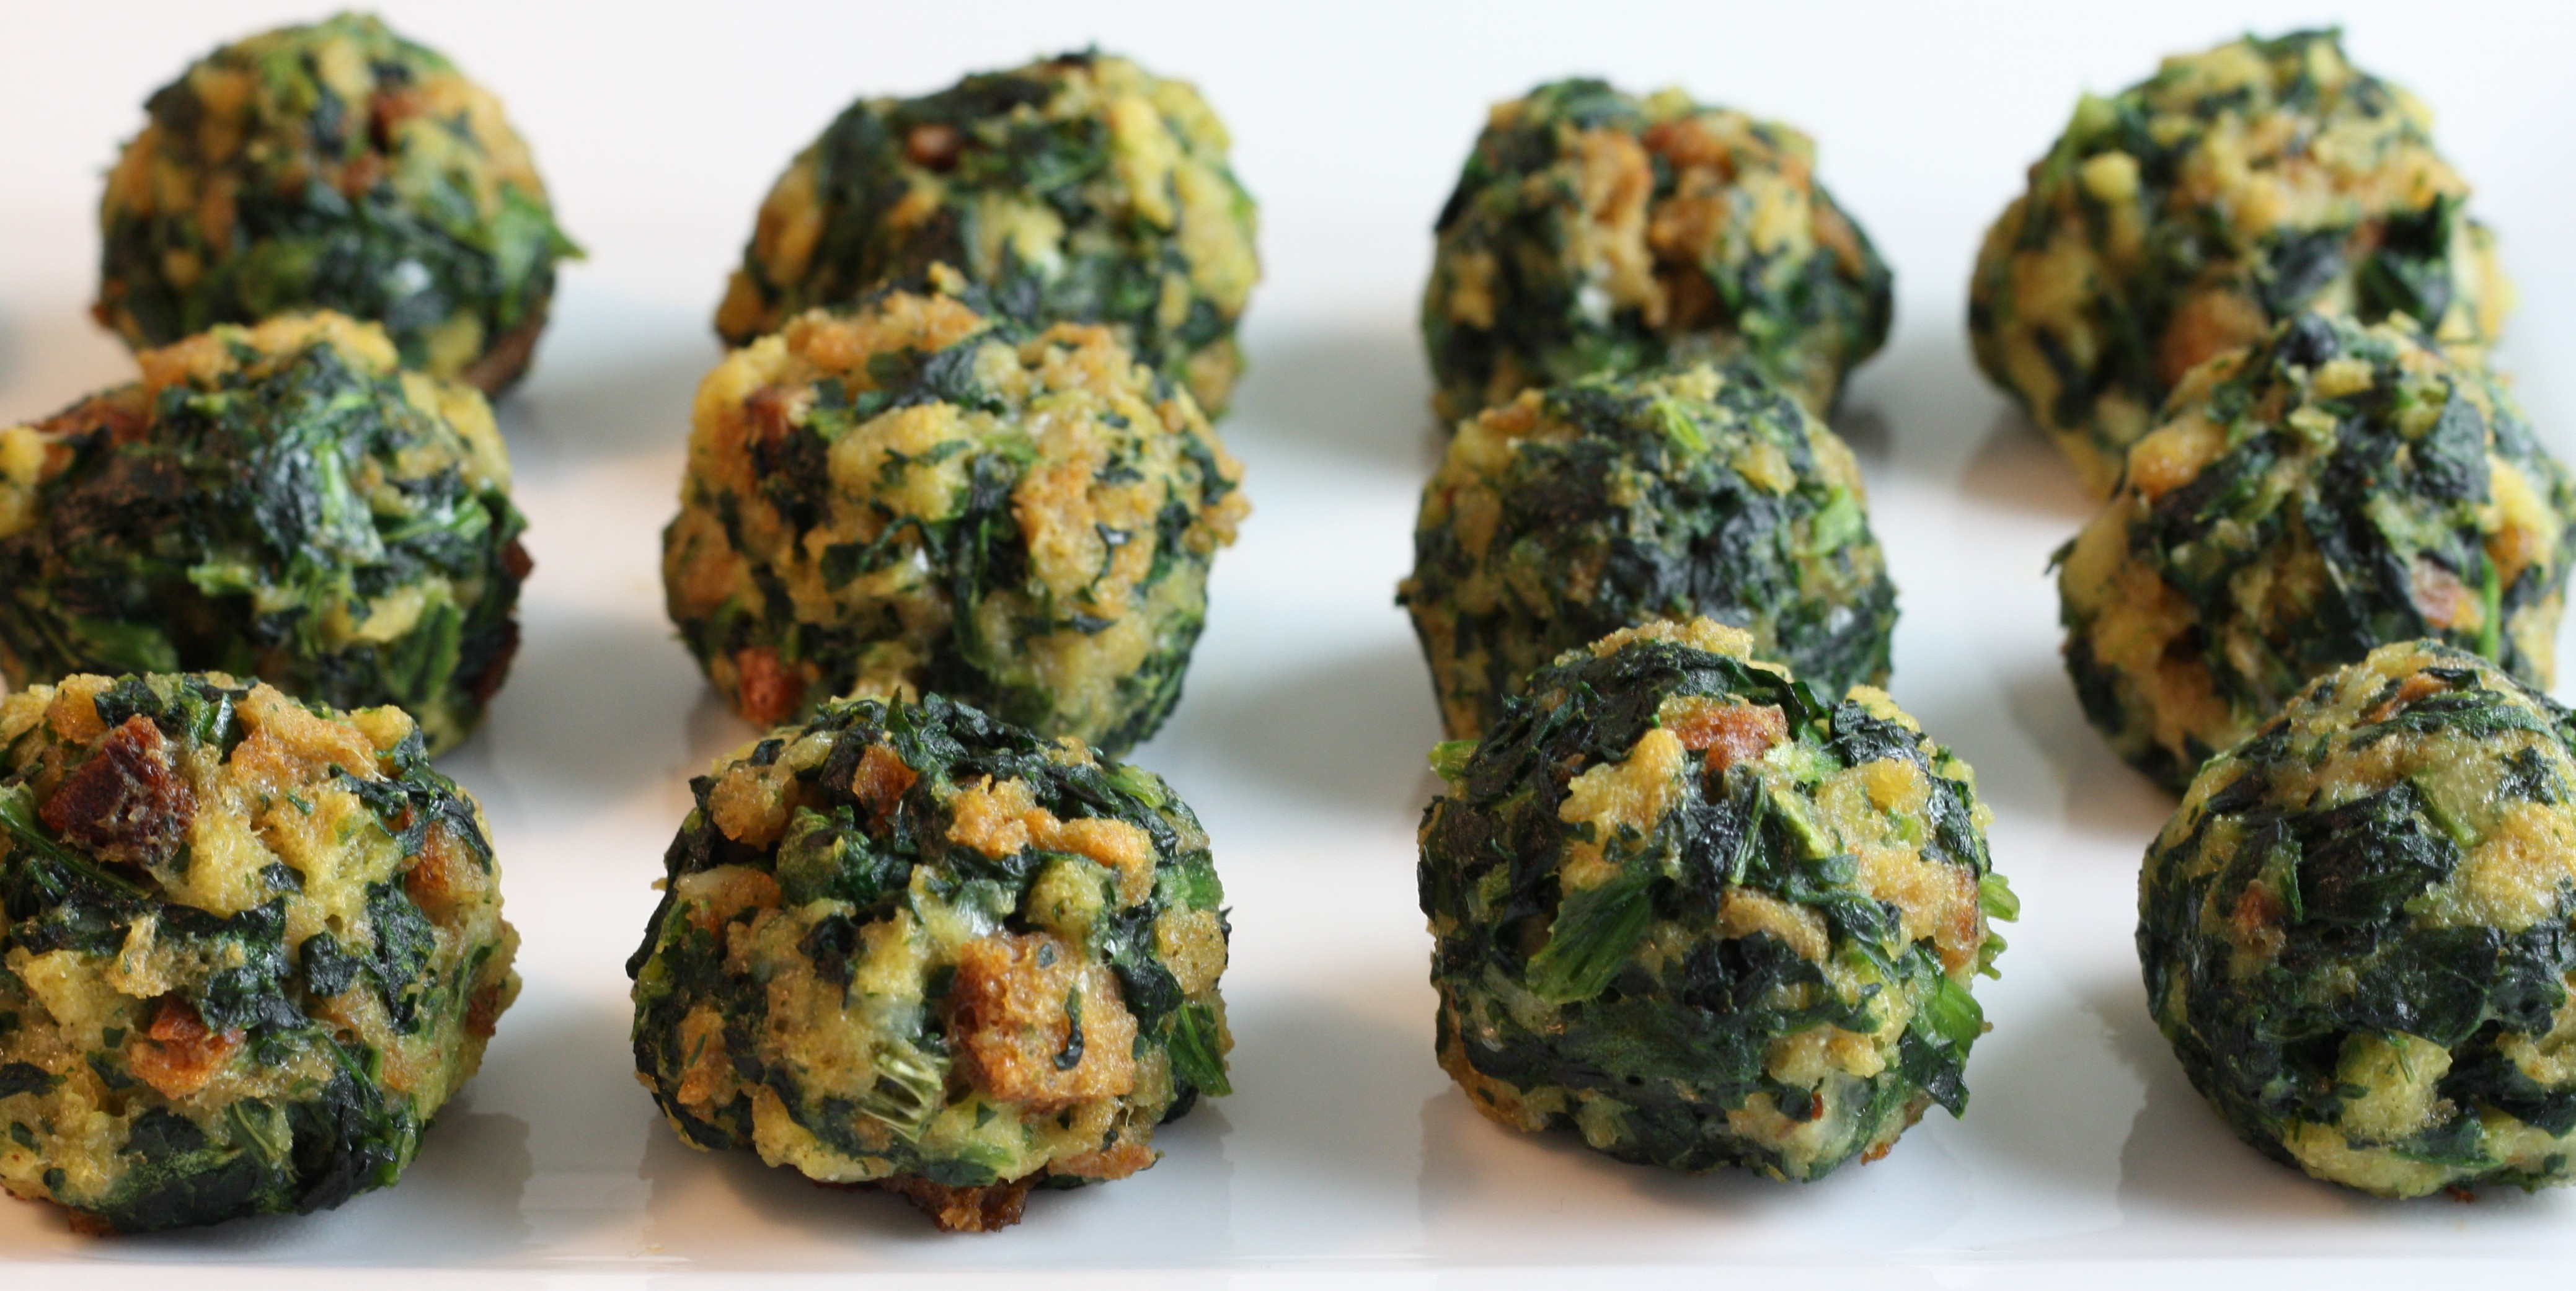 Spinach Balls | First Look, Then Cook